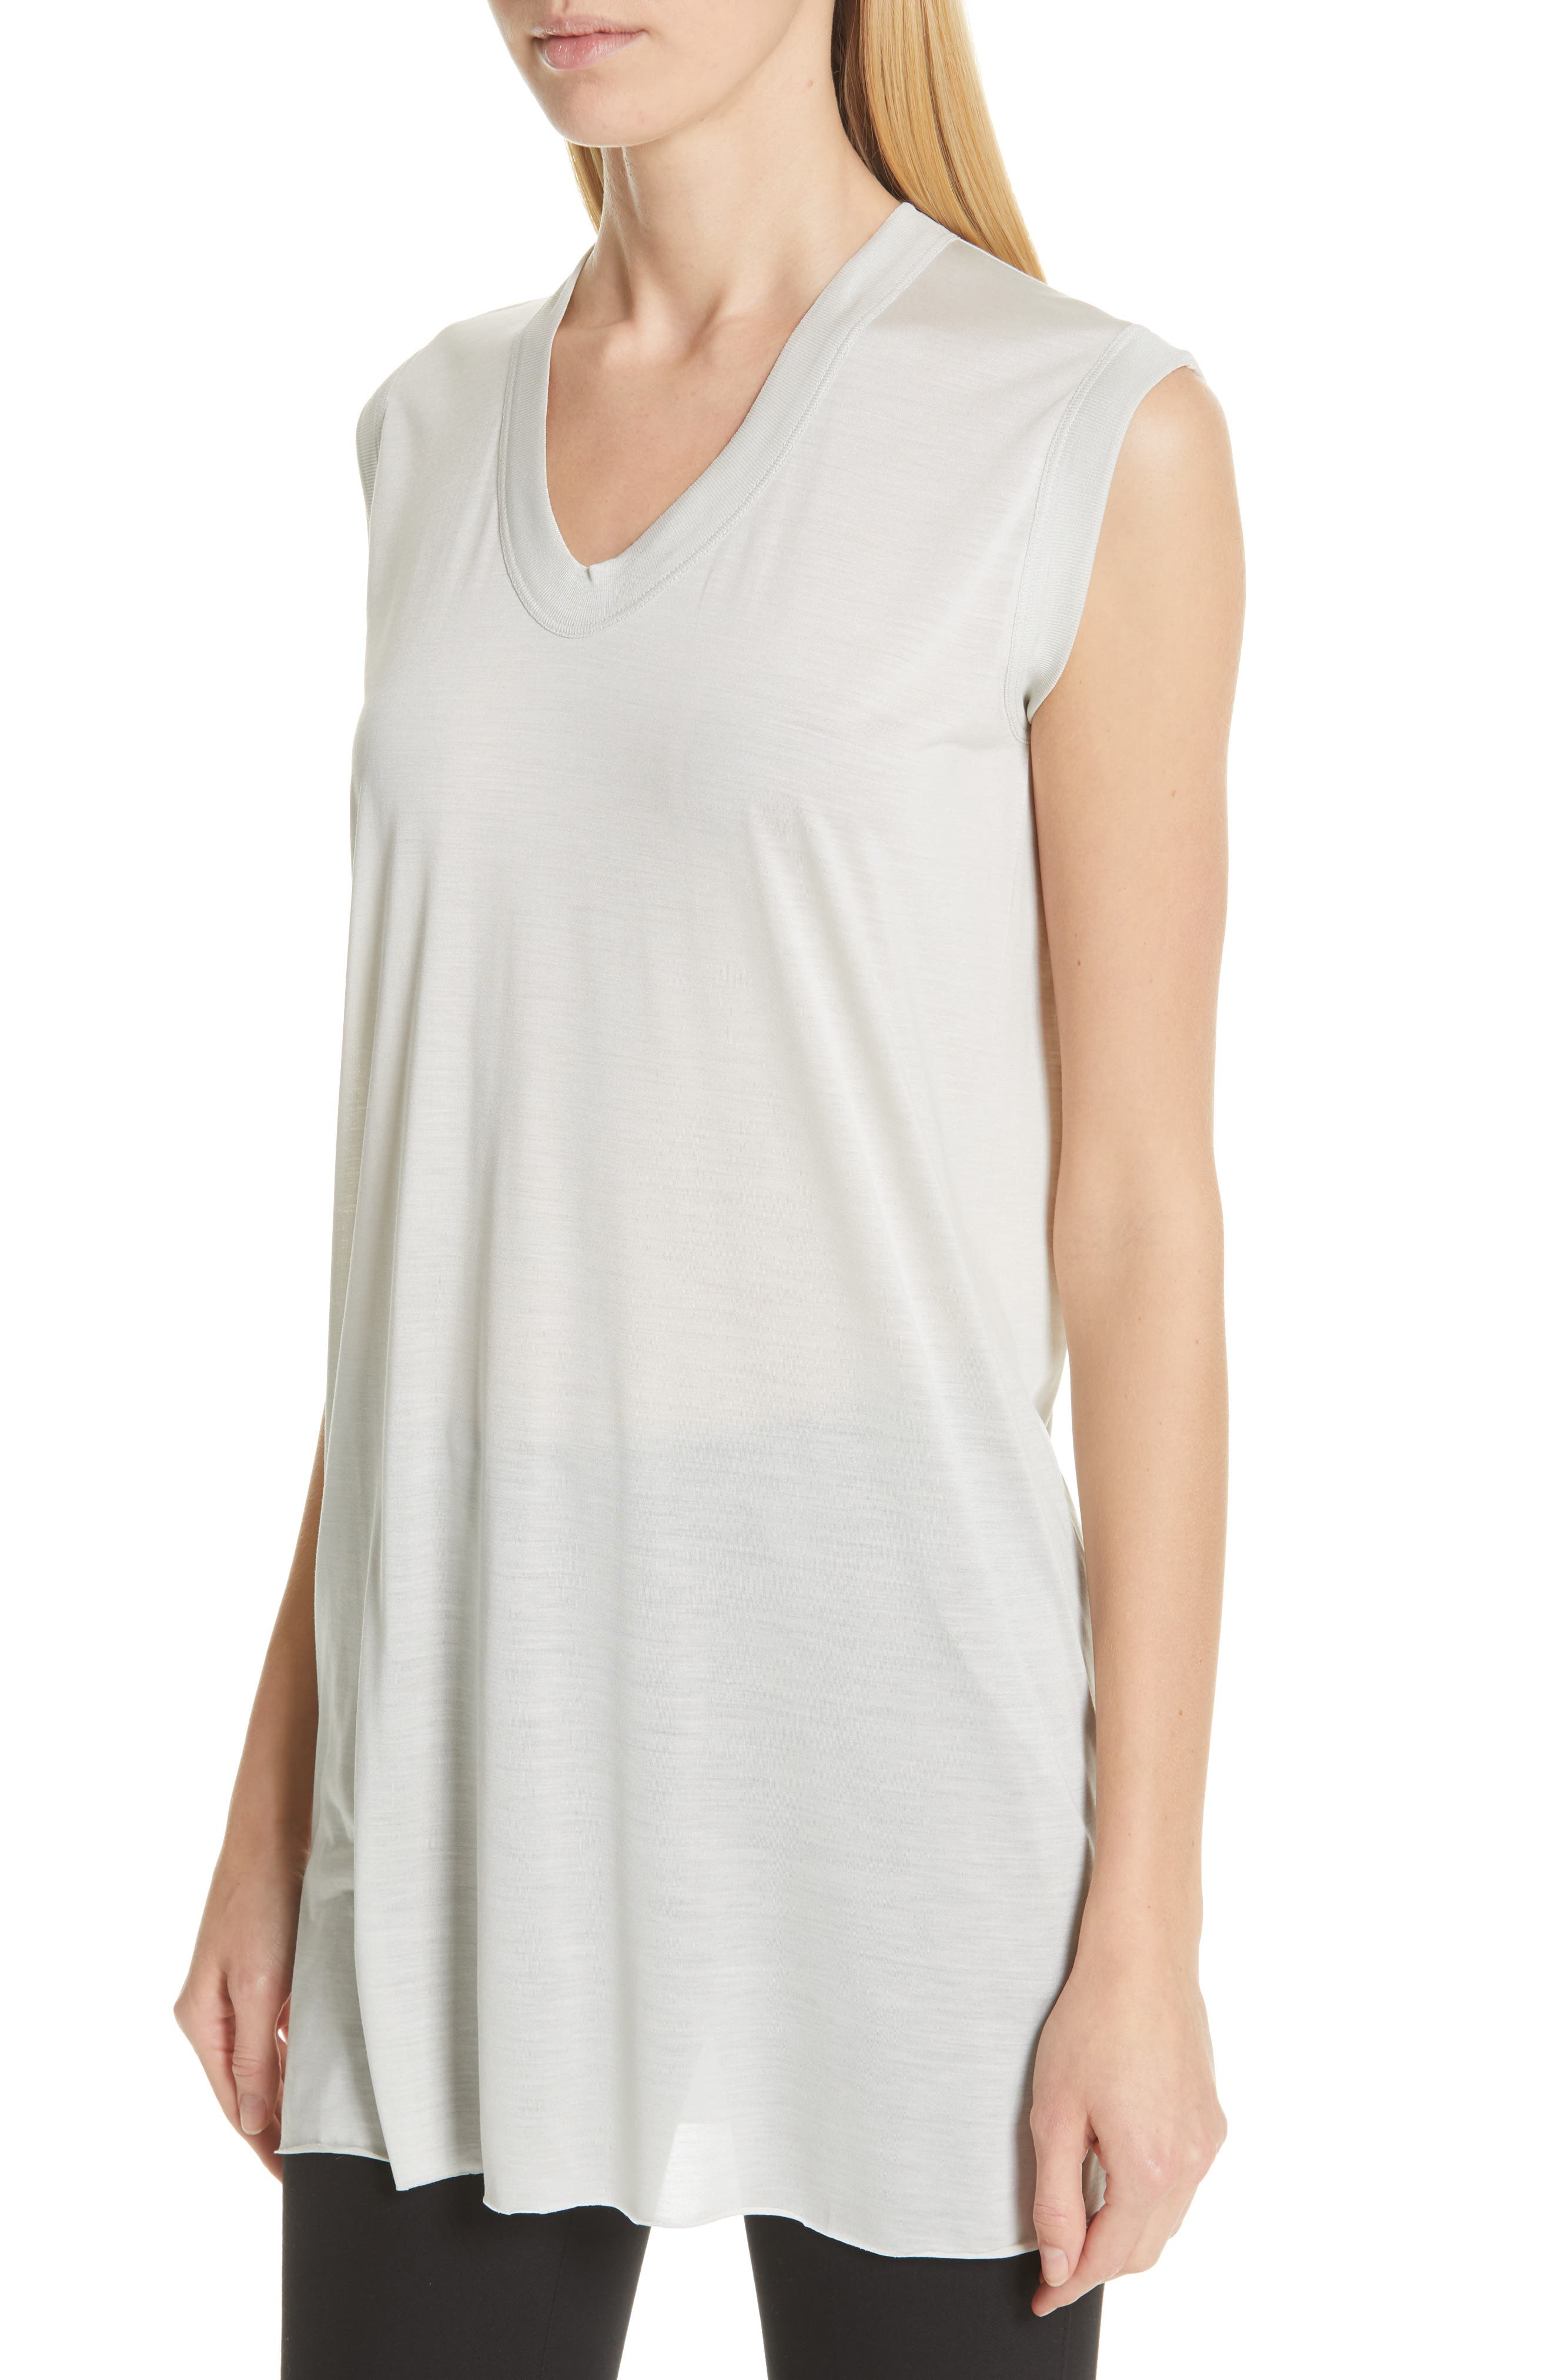 RICK OWENS,                             Silk Jersey Tee,                             Alternate thumbnail 4, color,                             OYSTER